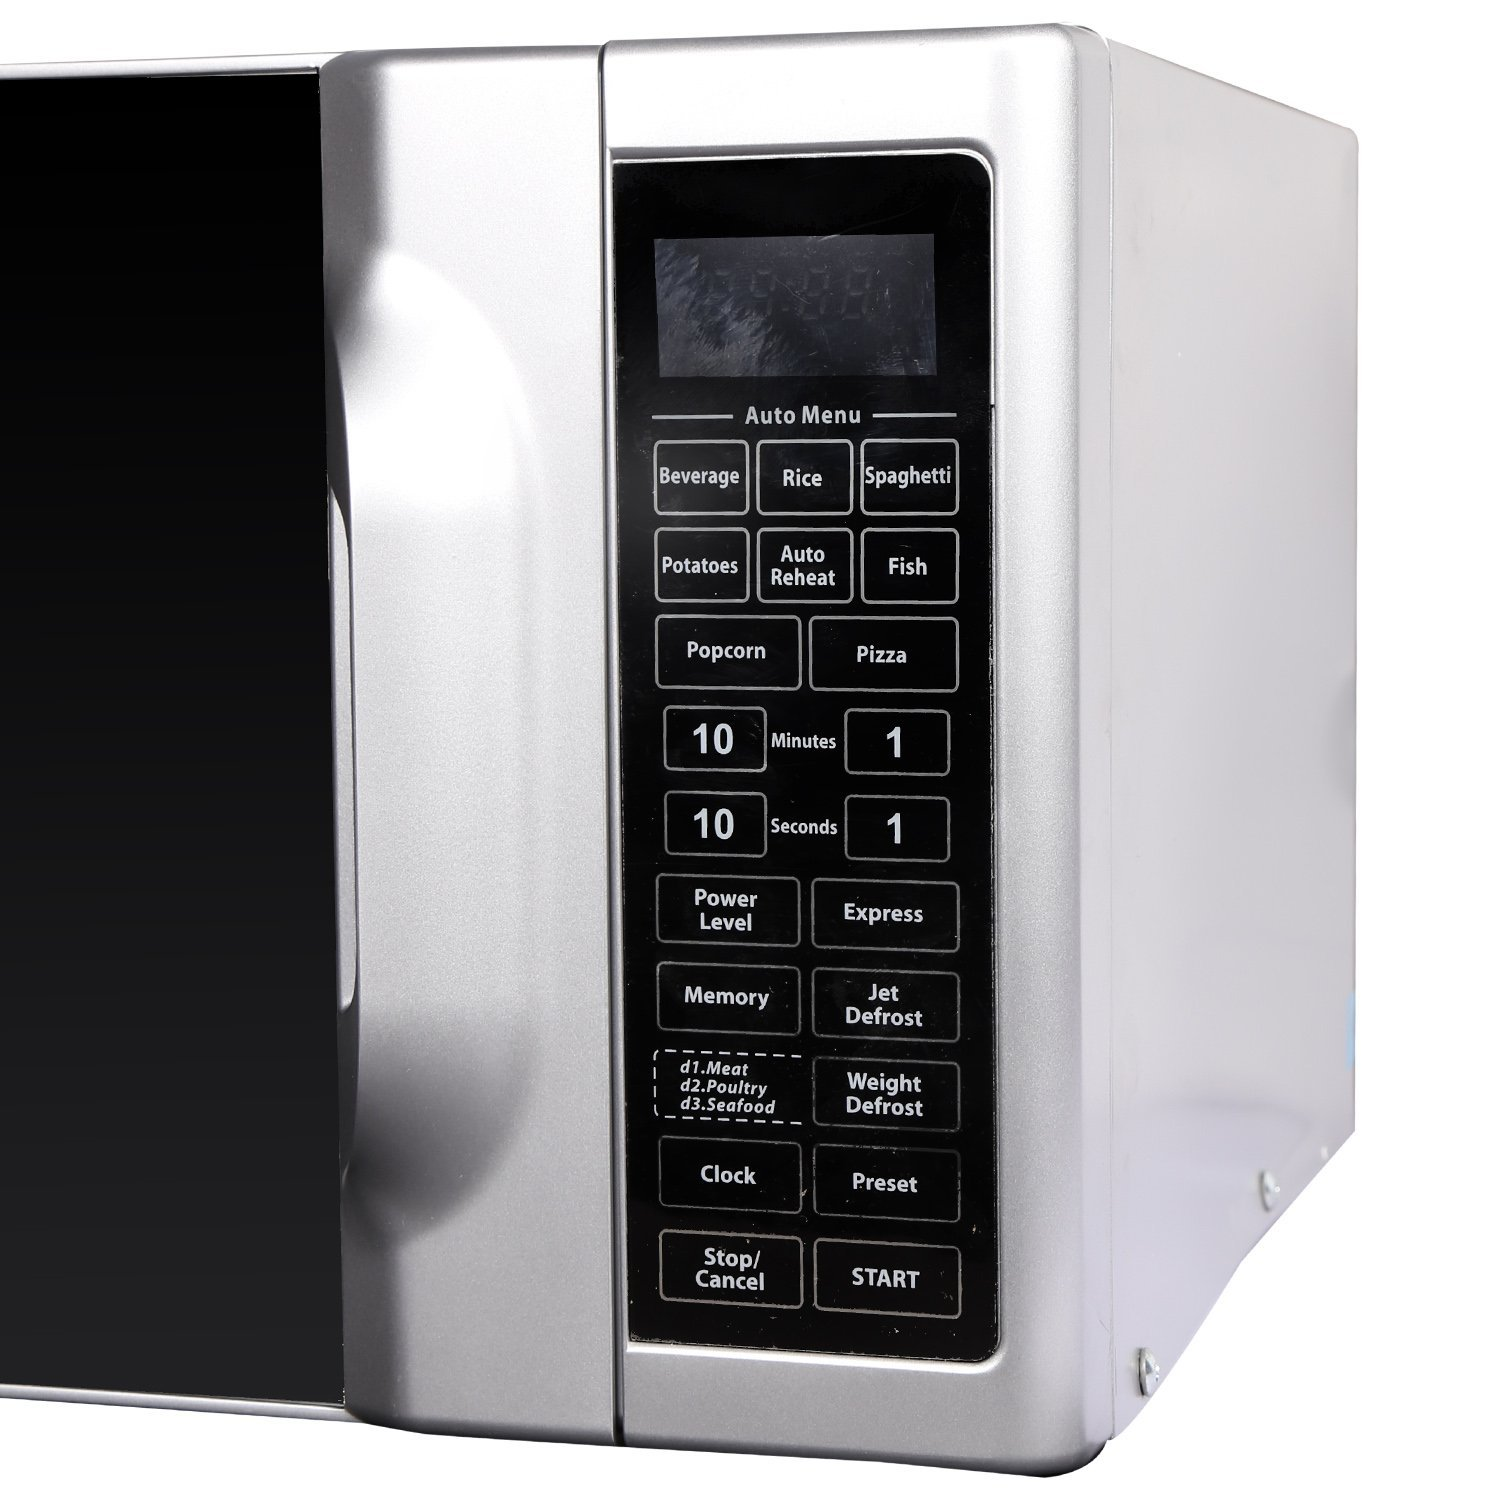 IFB solo microwave